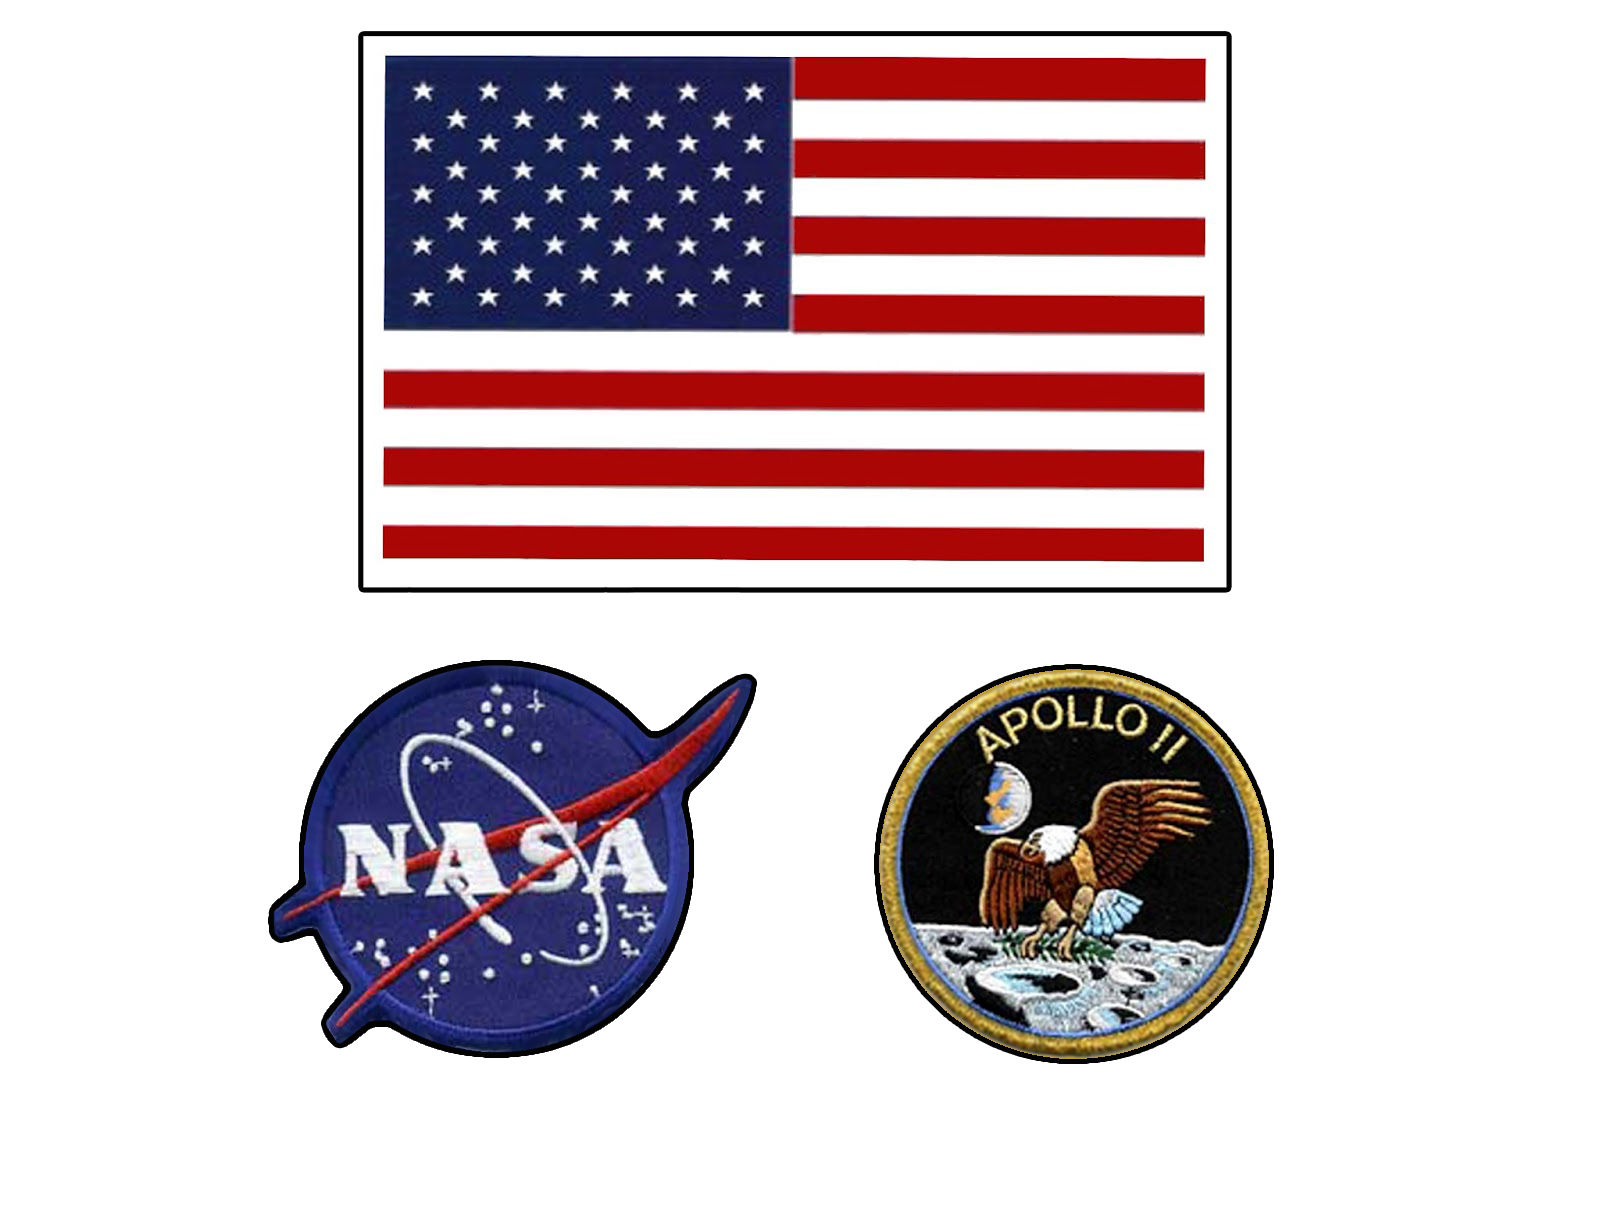 neil armstrong mission name patch - photo #24